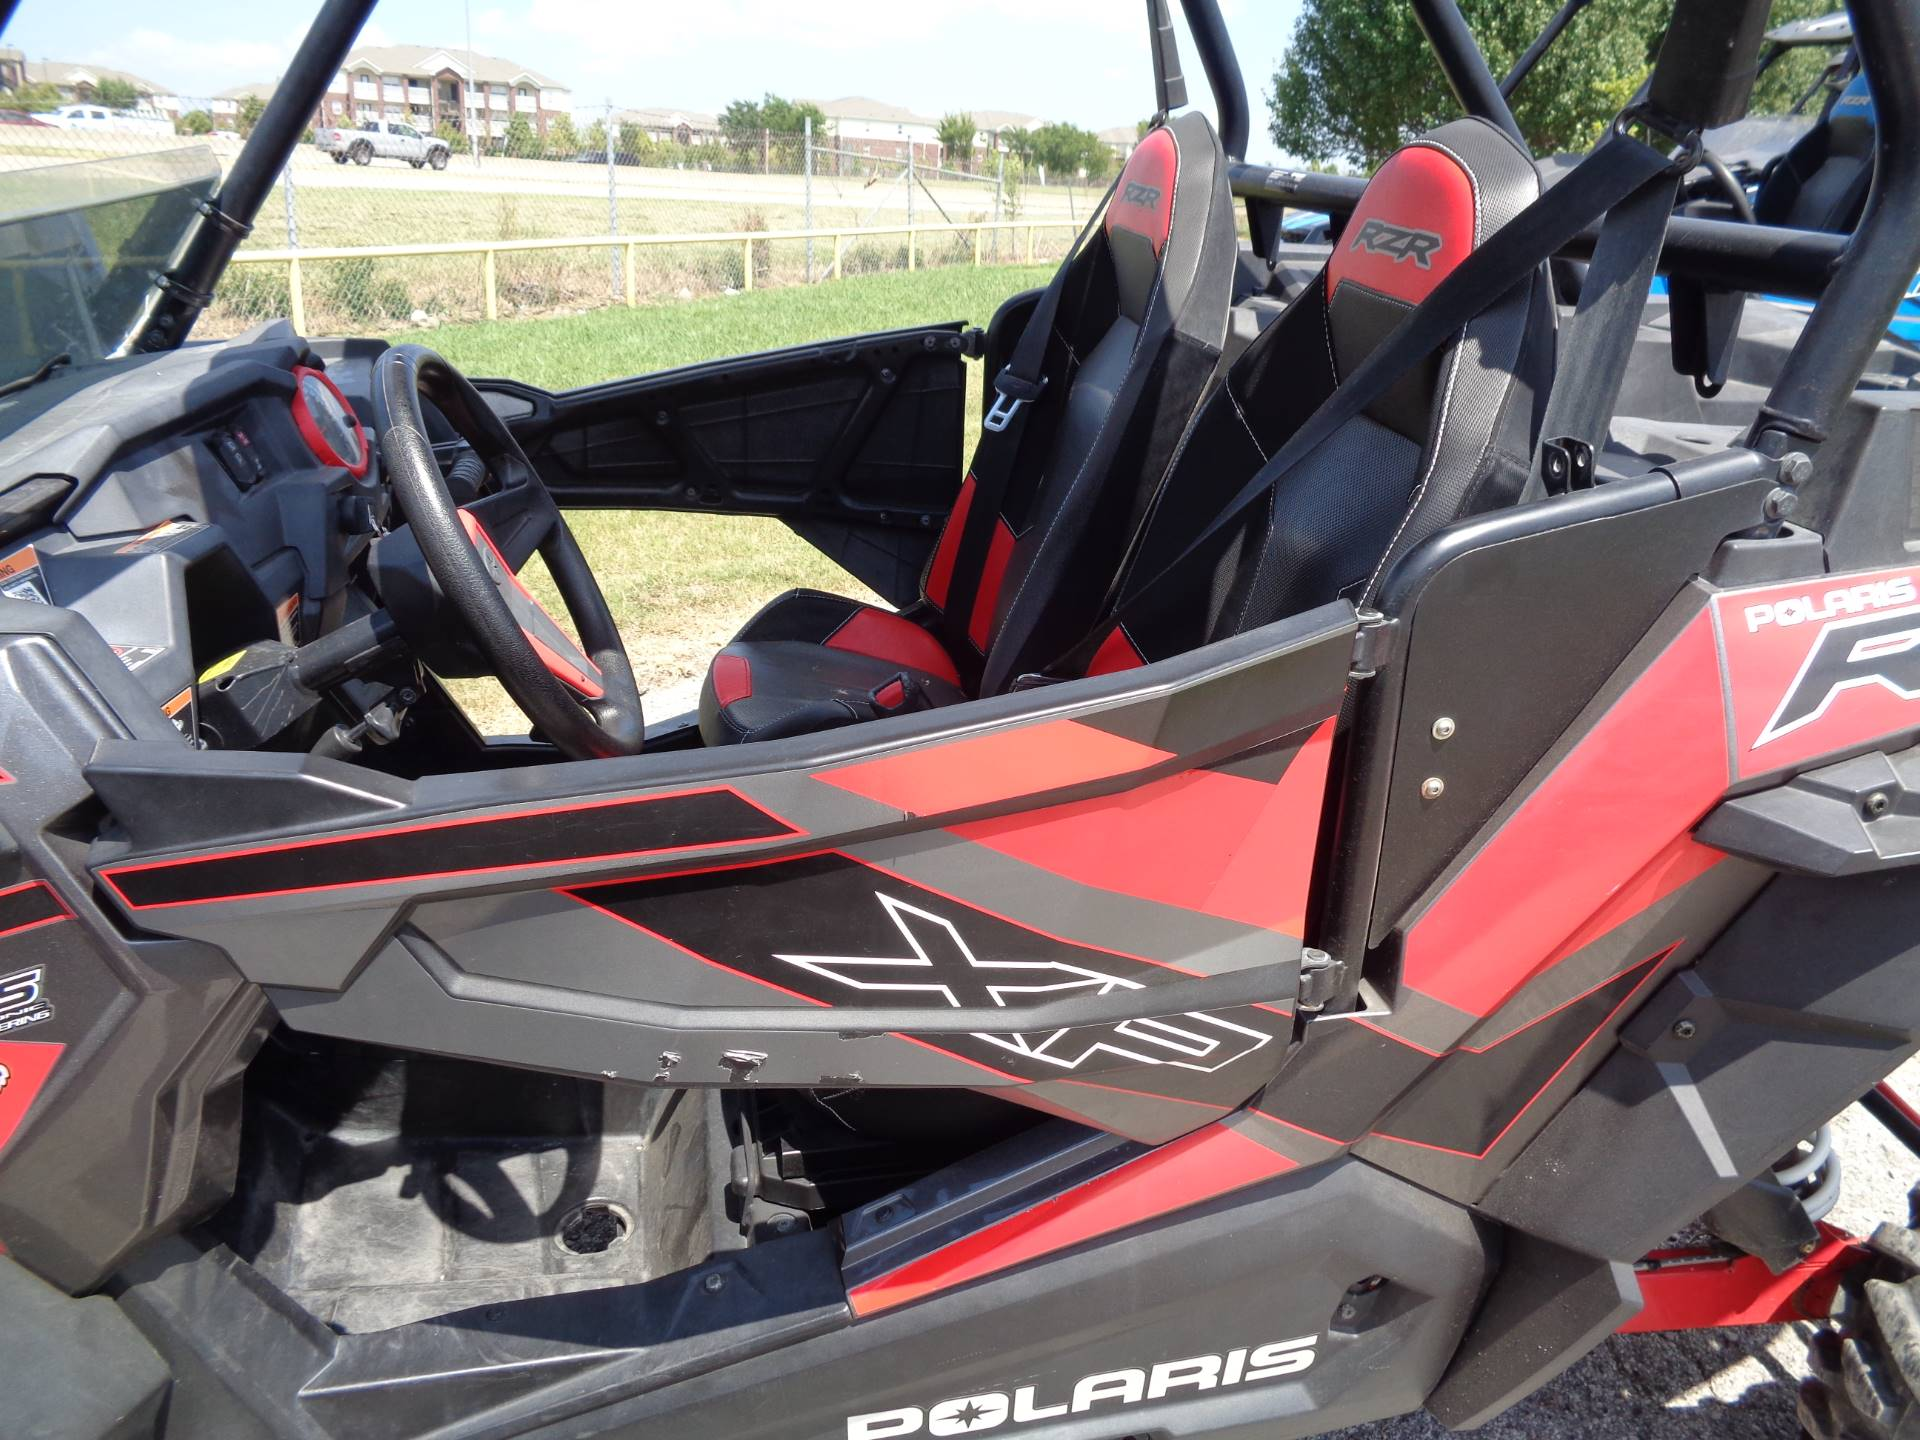 2017 Polaris RZR XP 1000 EPS in Broken Arrow, Oklahoma - Photo 3